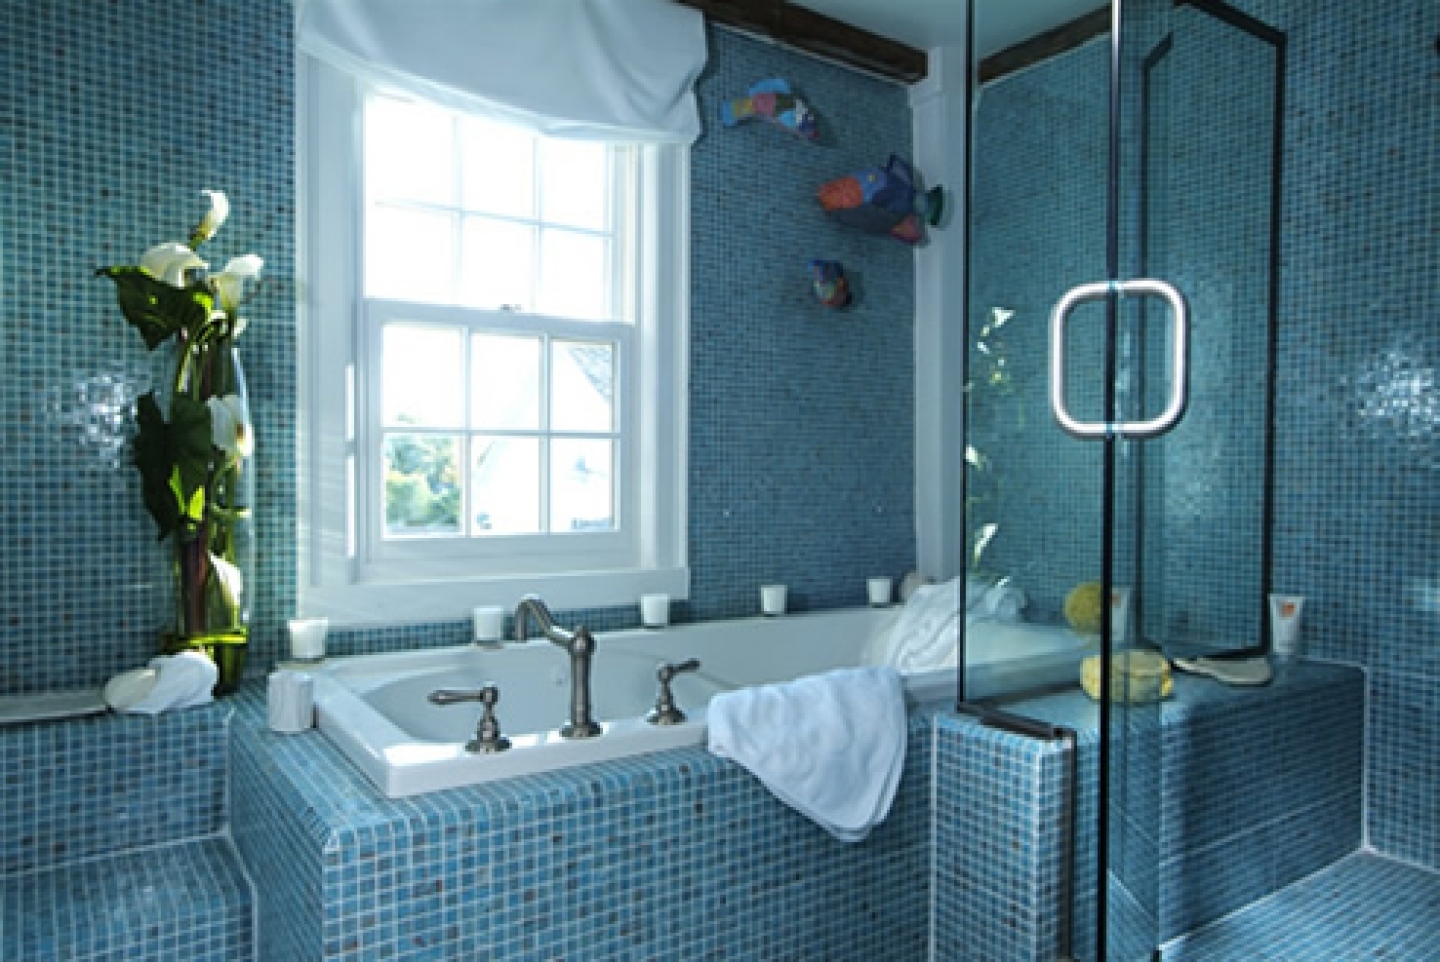 40 vintage blue bathroom tiles ideas and pictures - Bathroom designs images ...